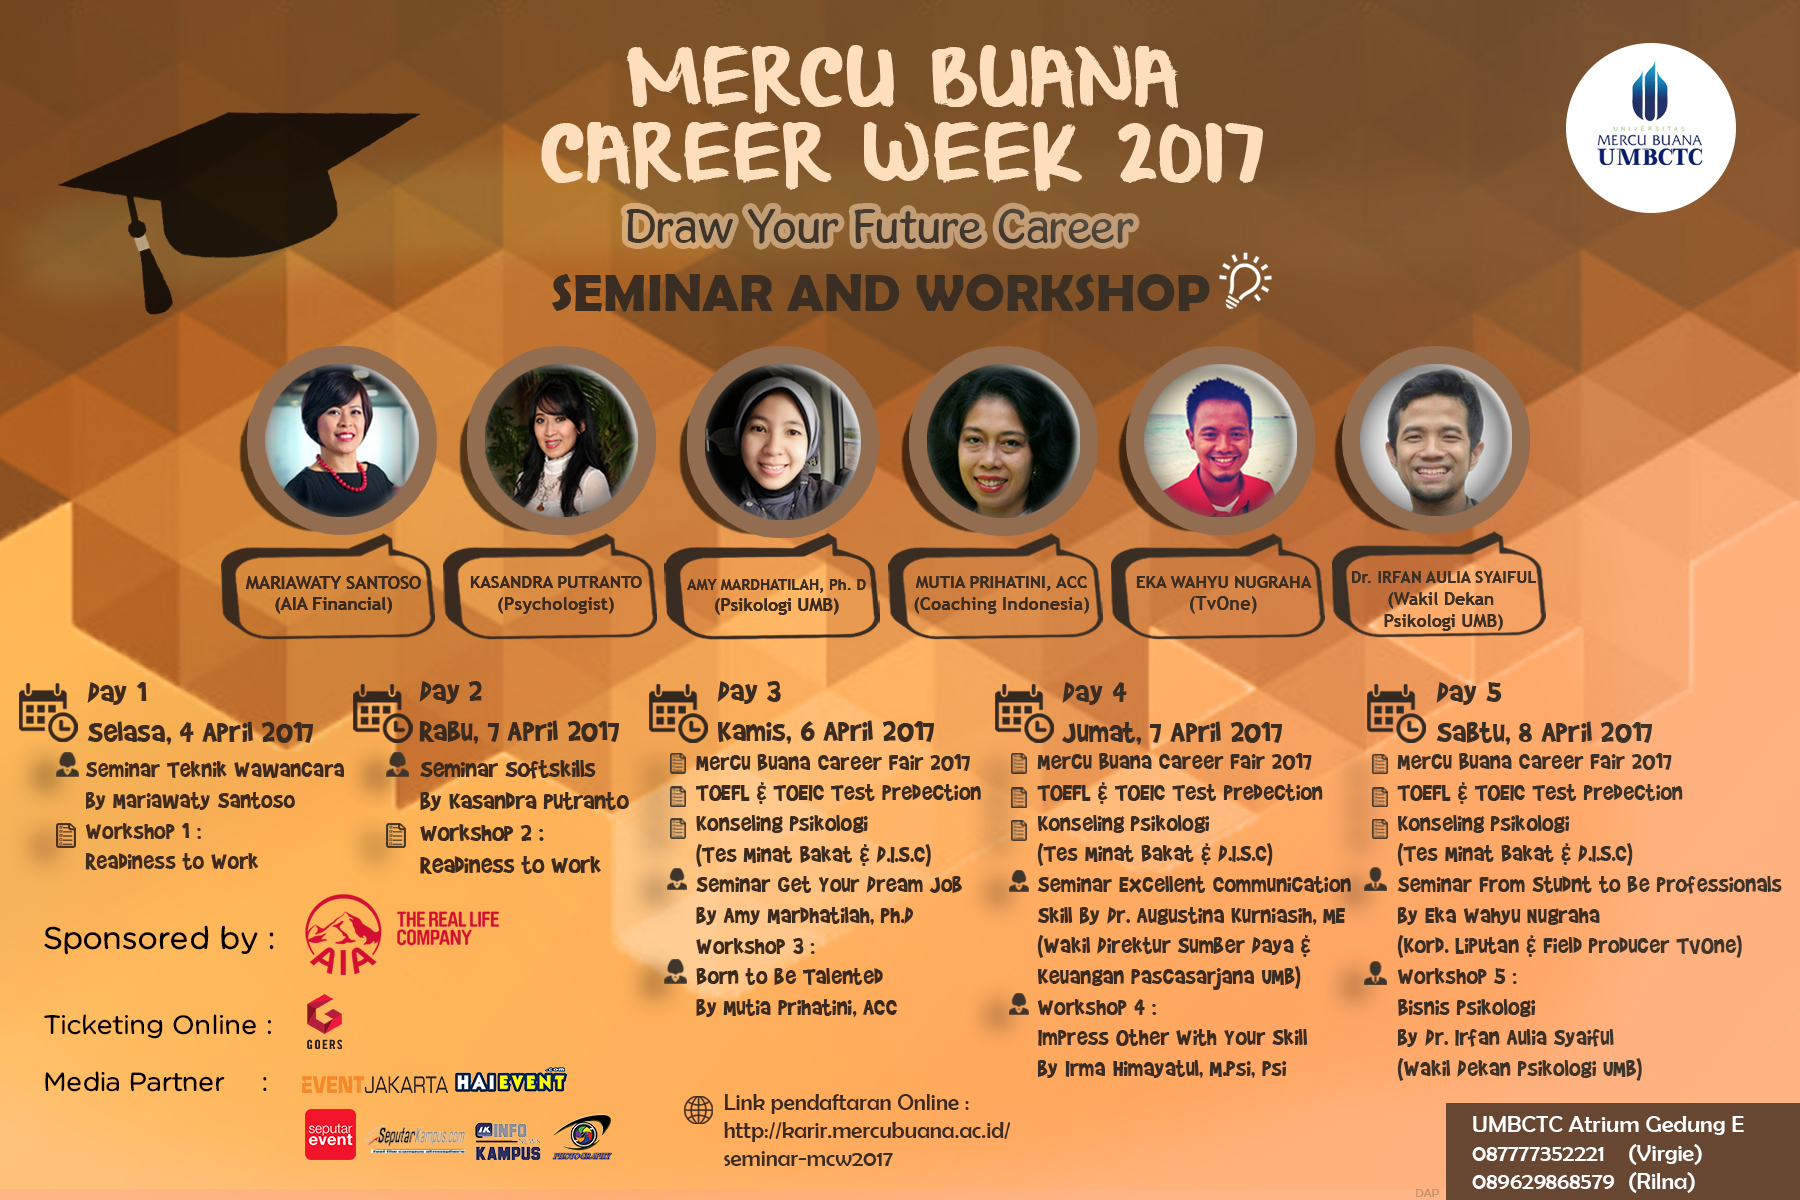 Seminar dan Workshop Career Week 2017